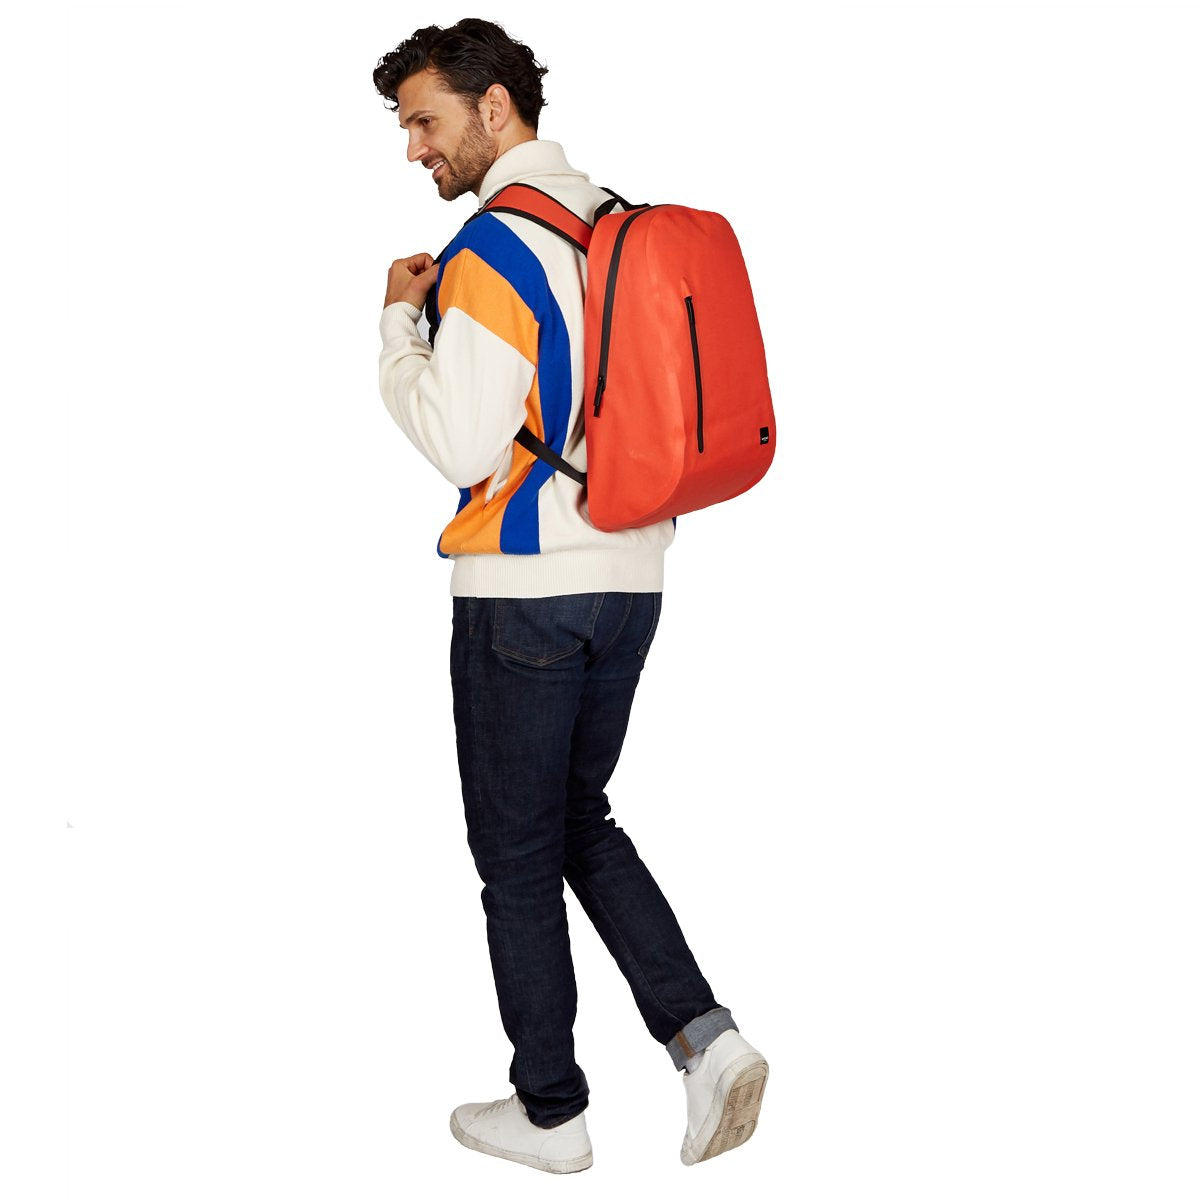 "Harpsden Waterproof Laptop Backpack - 14"" -  Flash Orange 